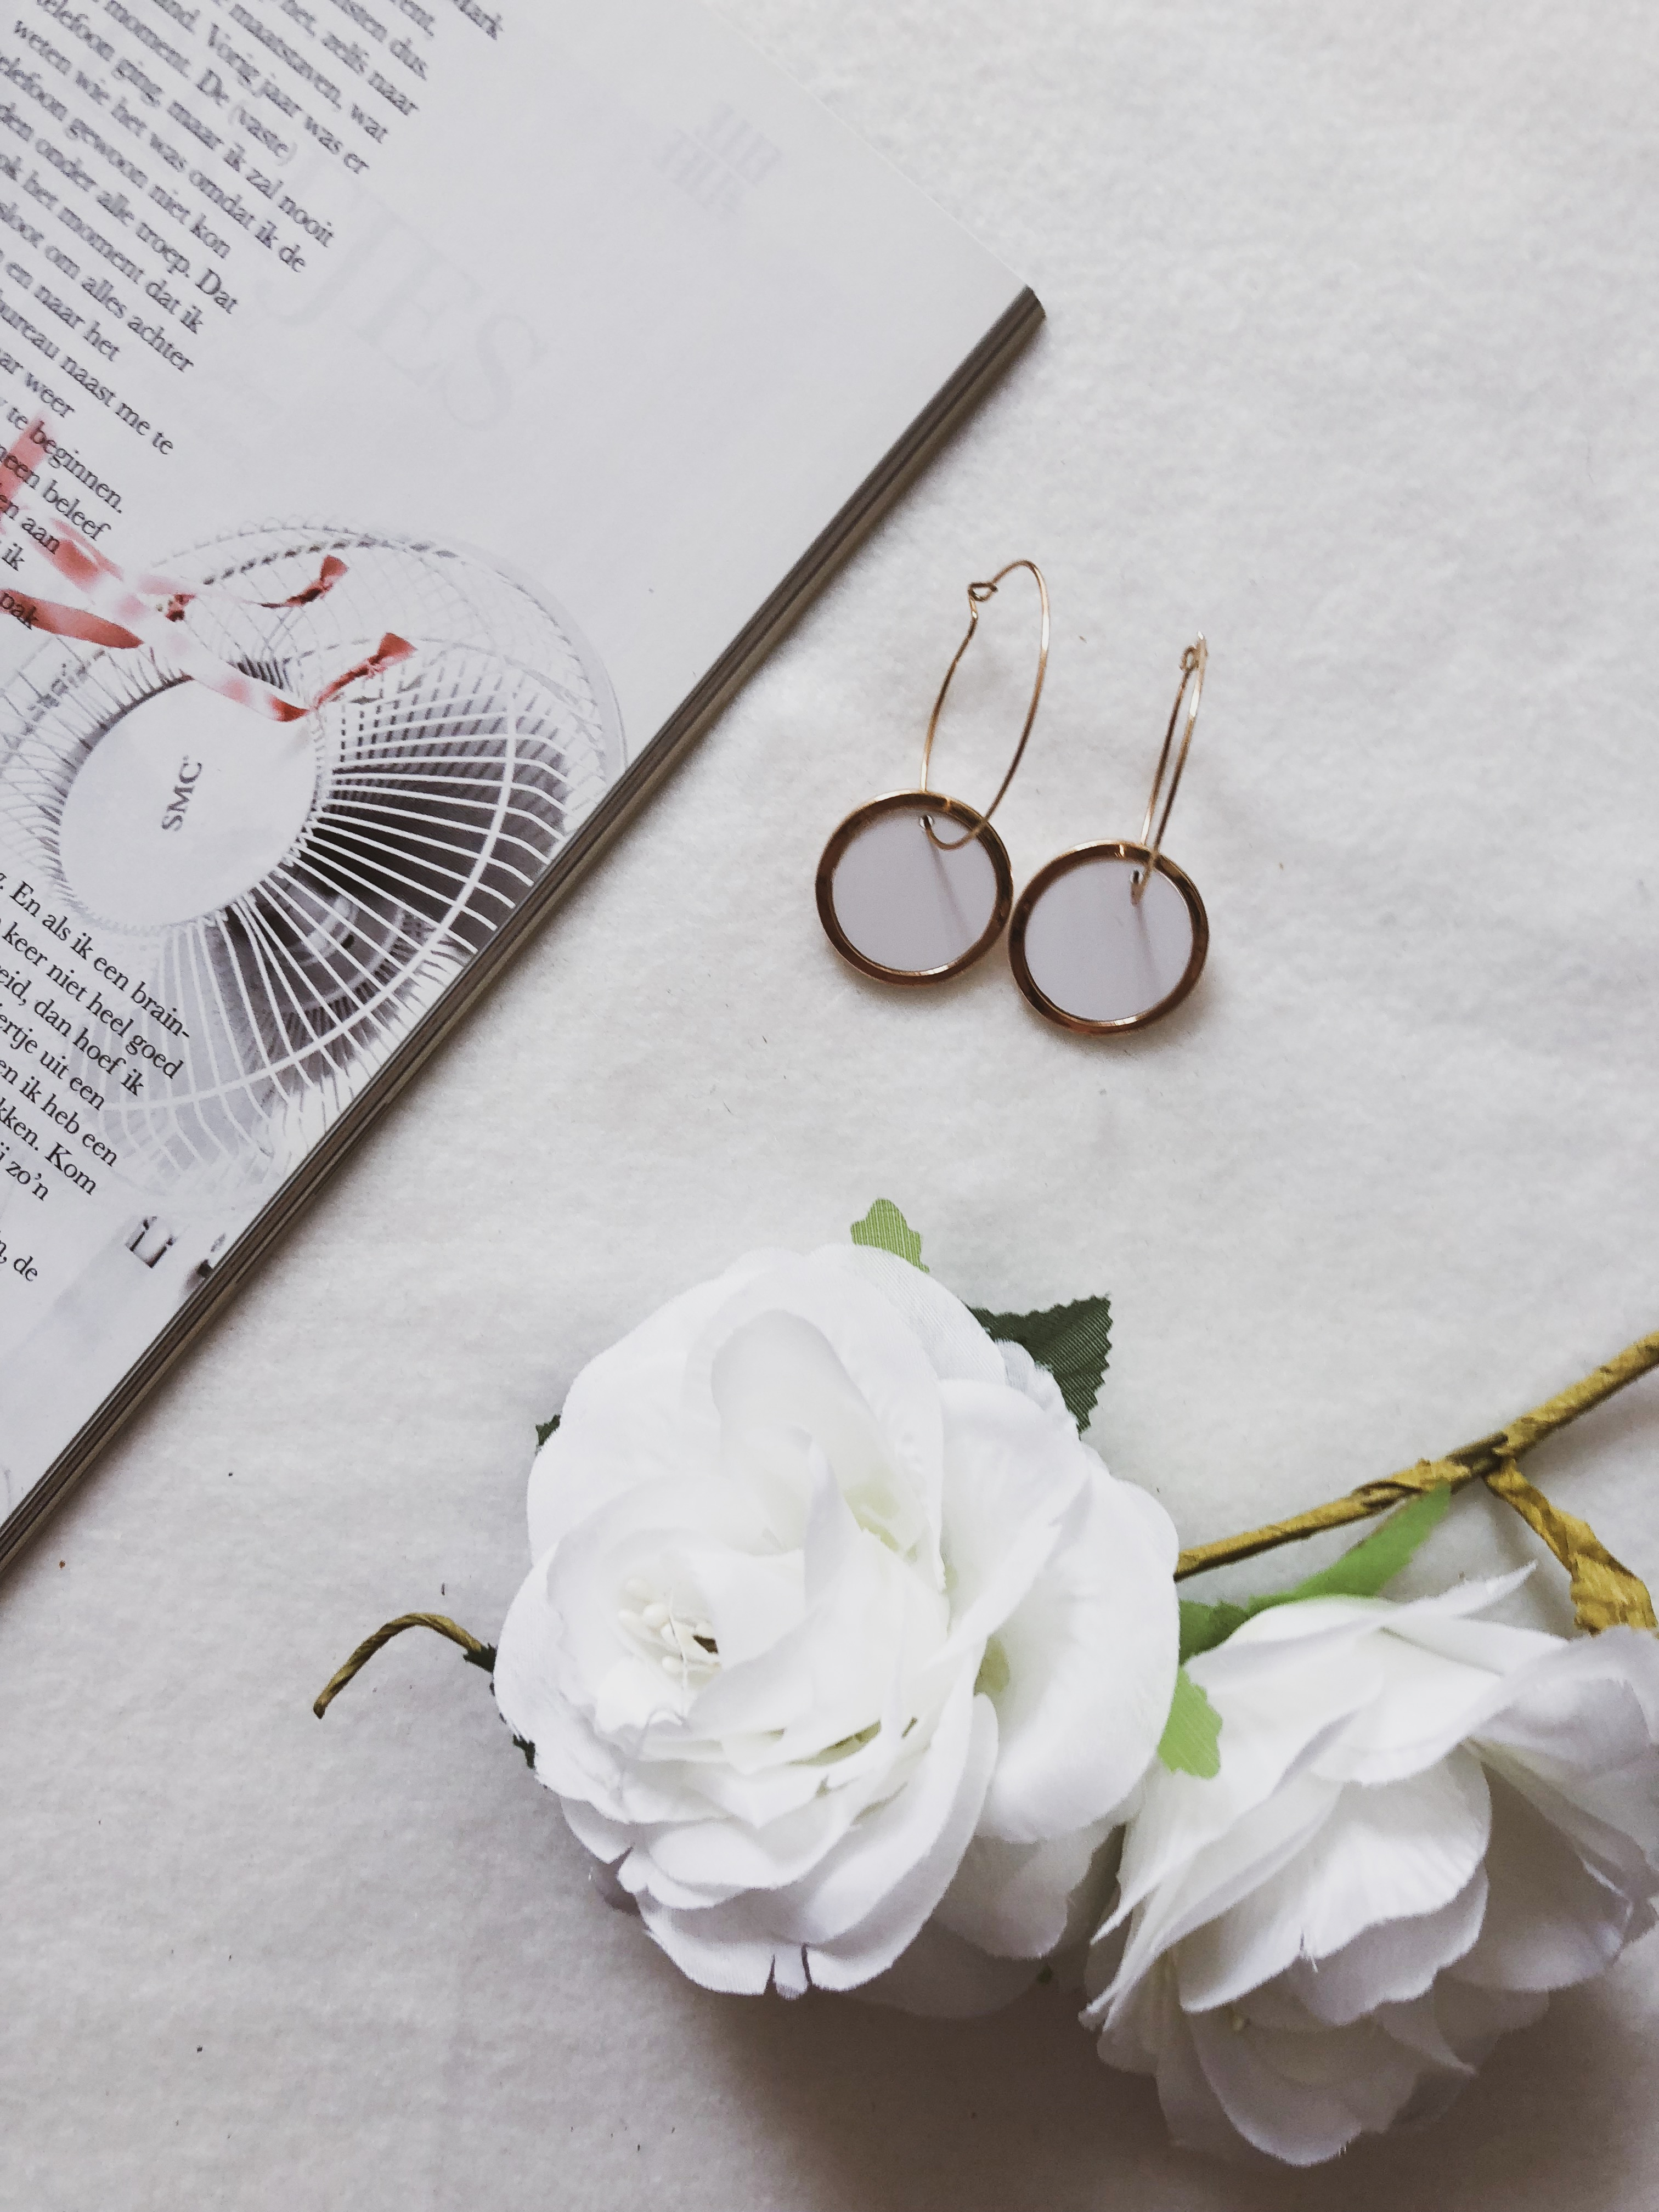 What I got in sales: Rose gold and white earrings Veritas